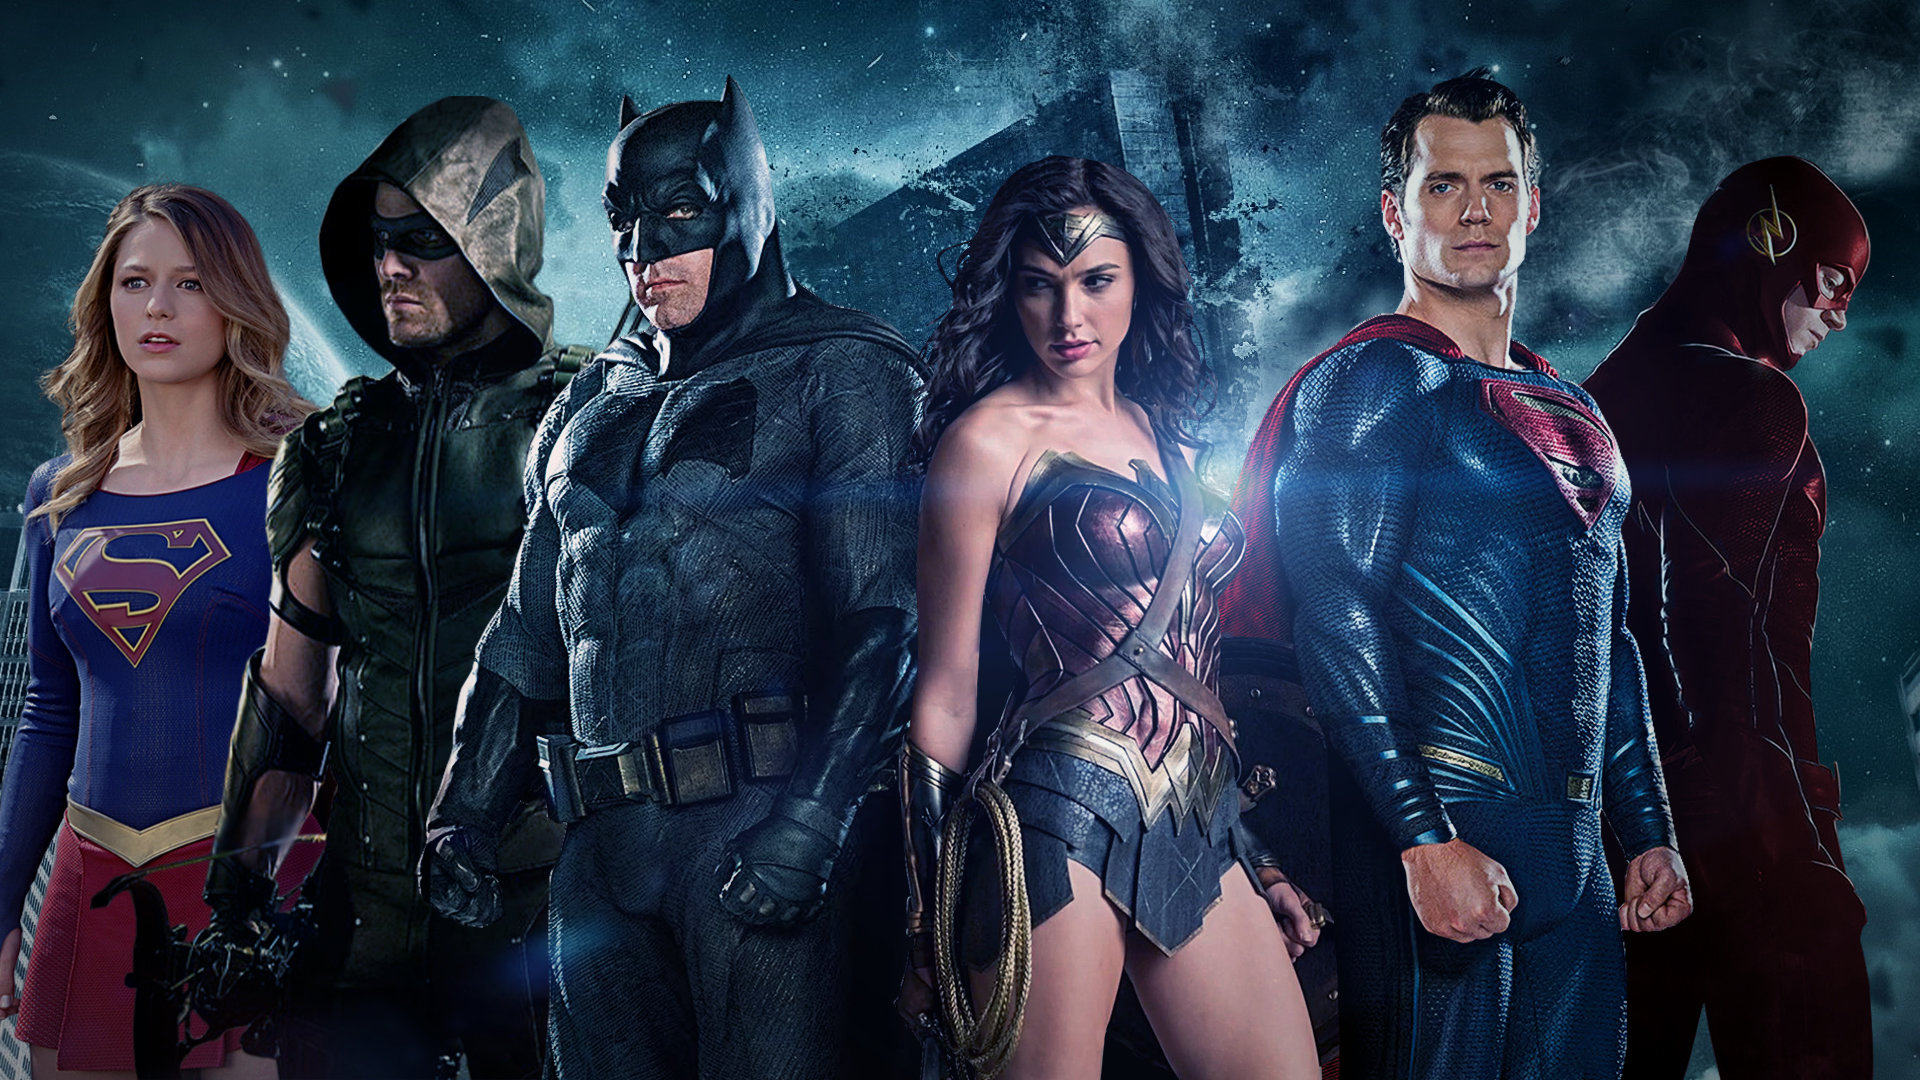 Justice League Movie 2017 Wallpapers 1920x1080 Full Hd 1080p